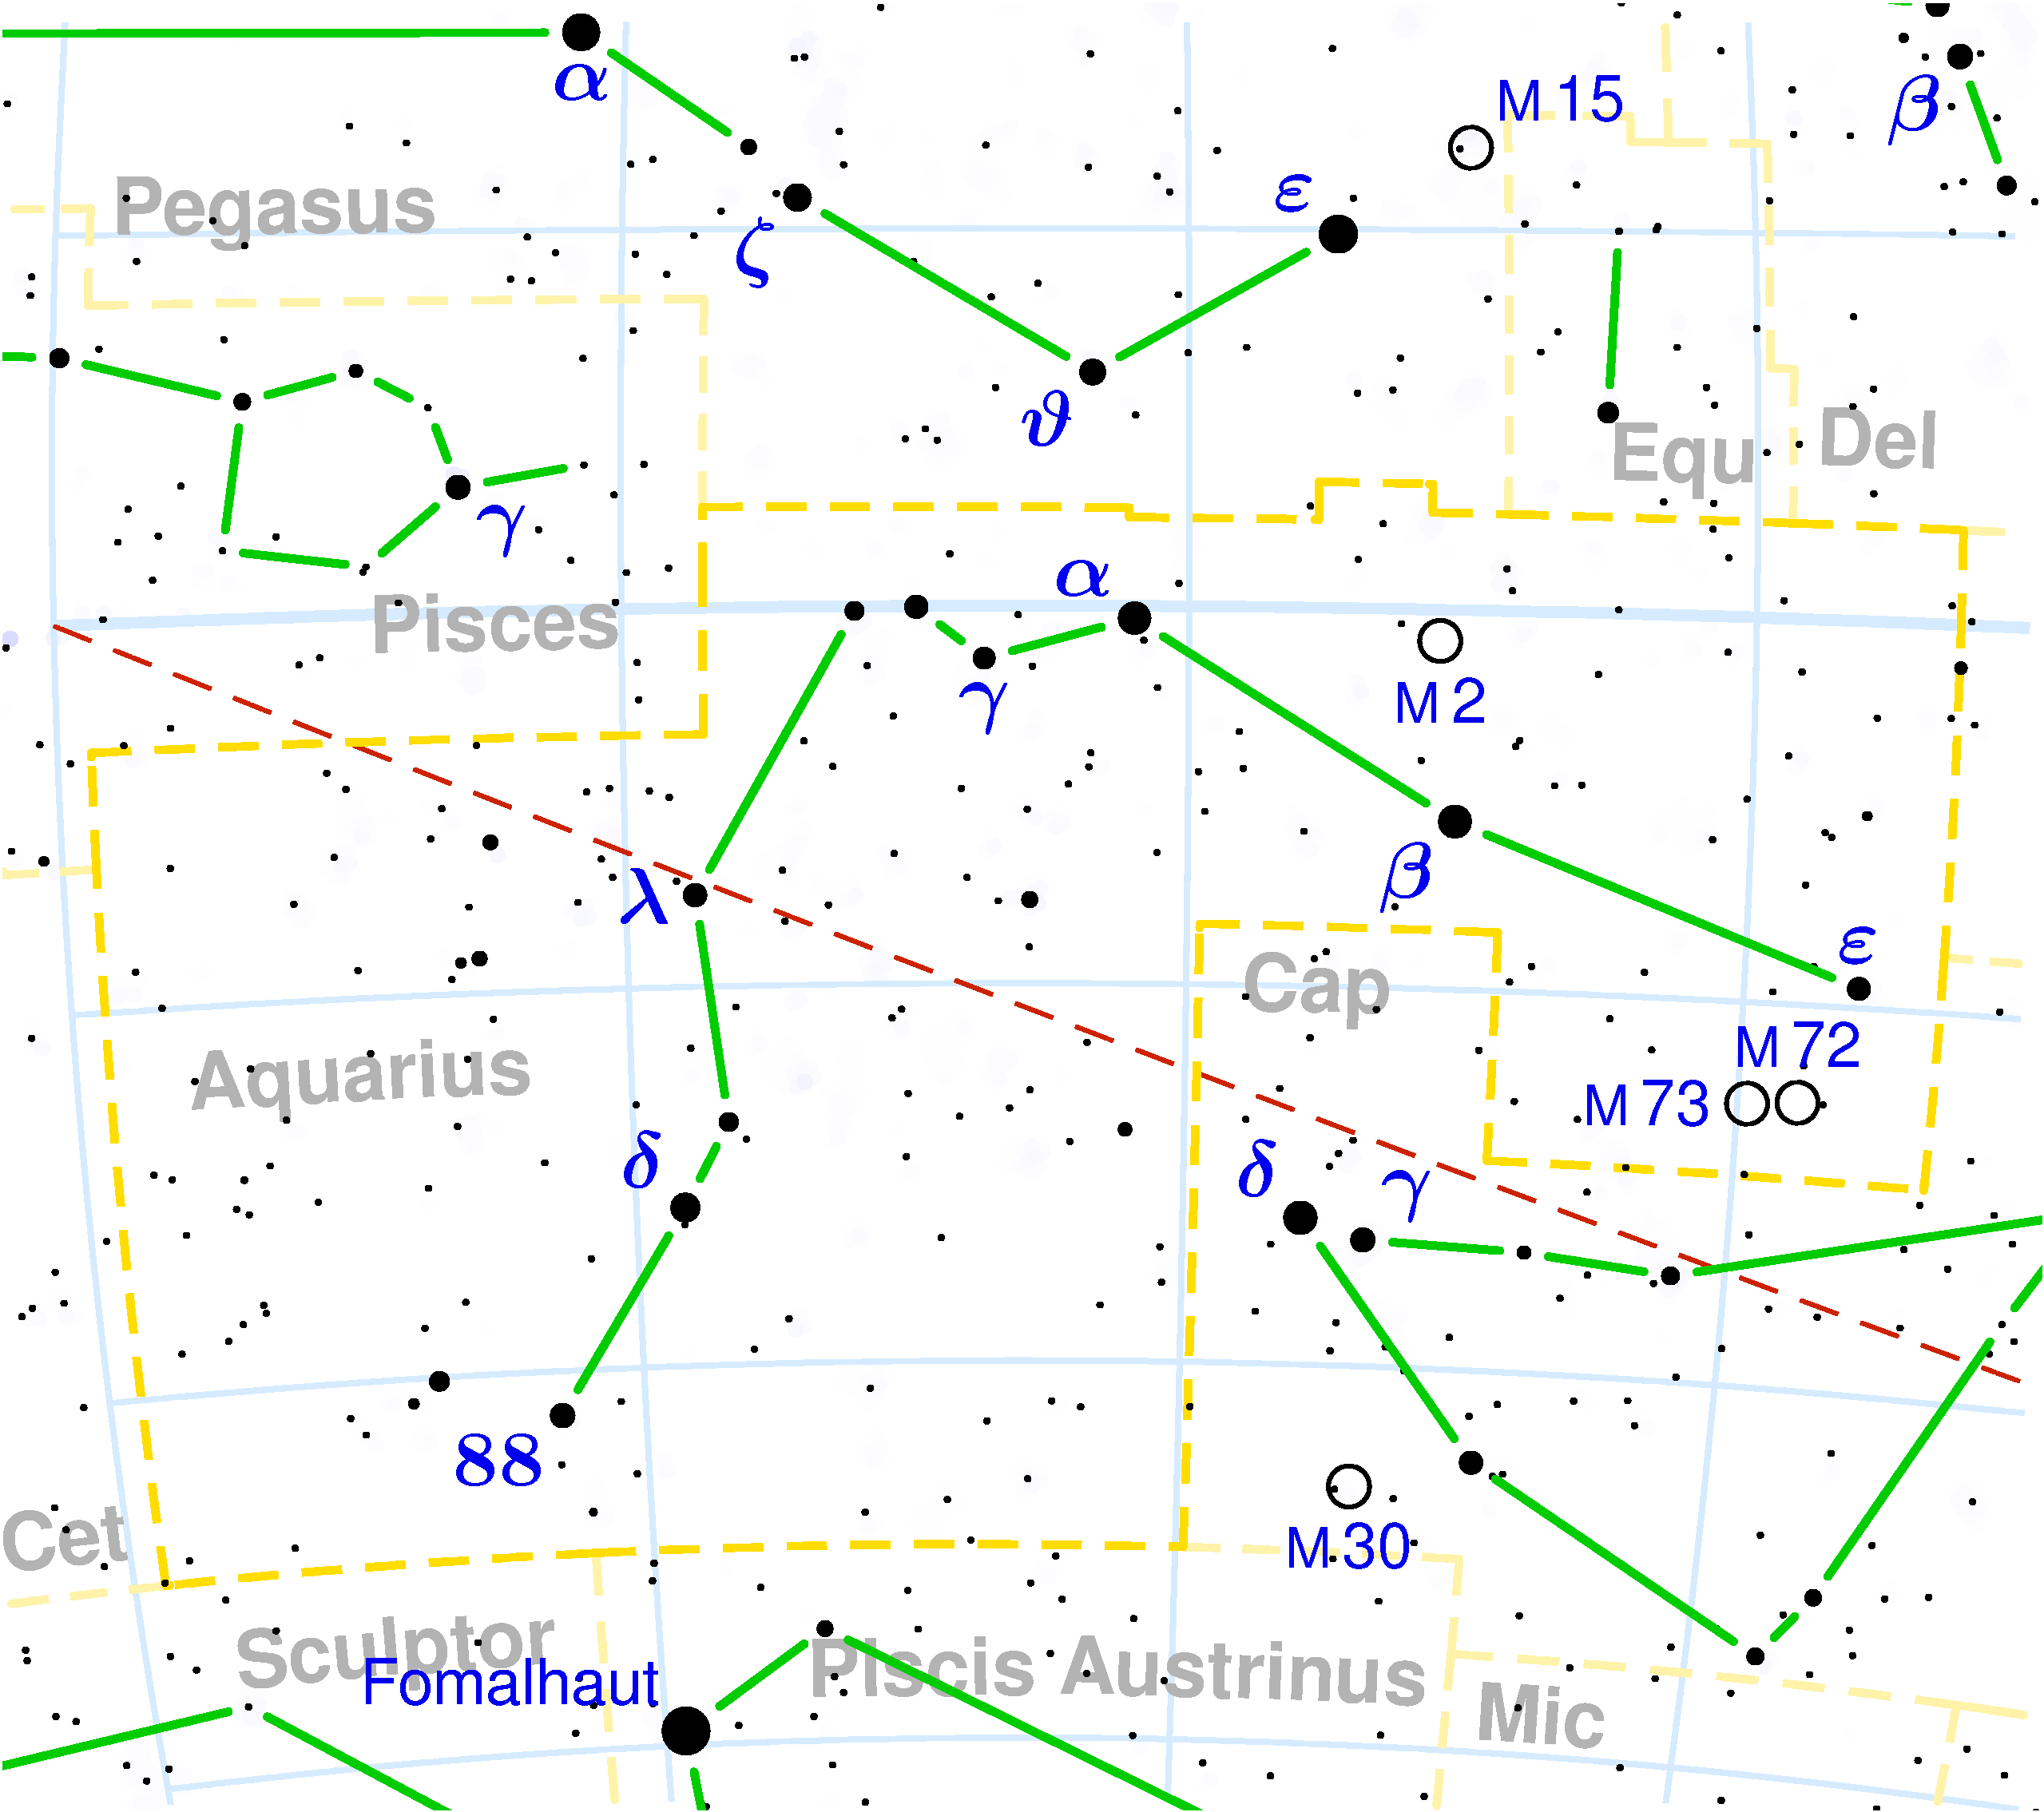 Depiction of NGC 7121